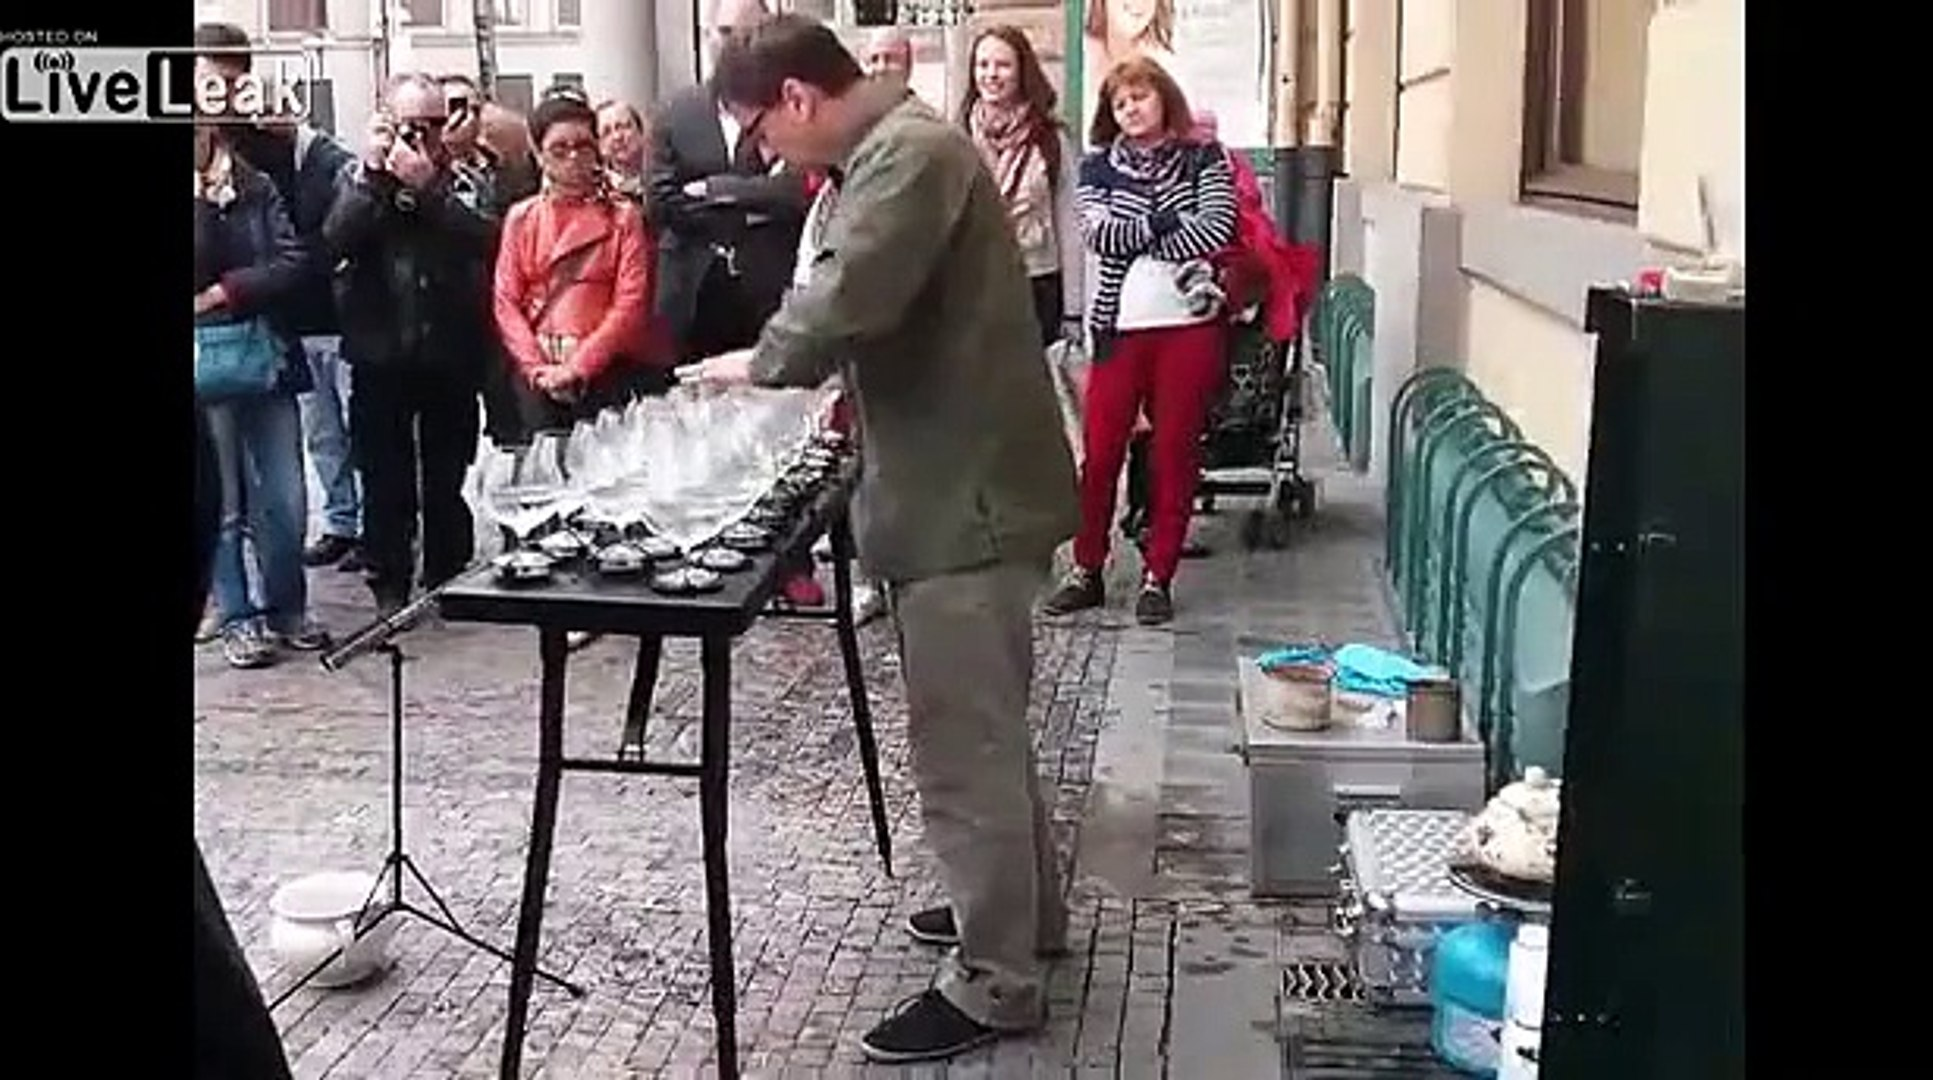 Amazing musician plays glasses on the streets of Prague